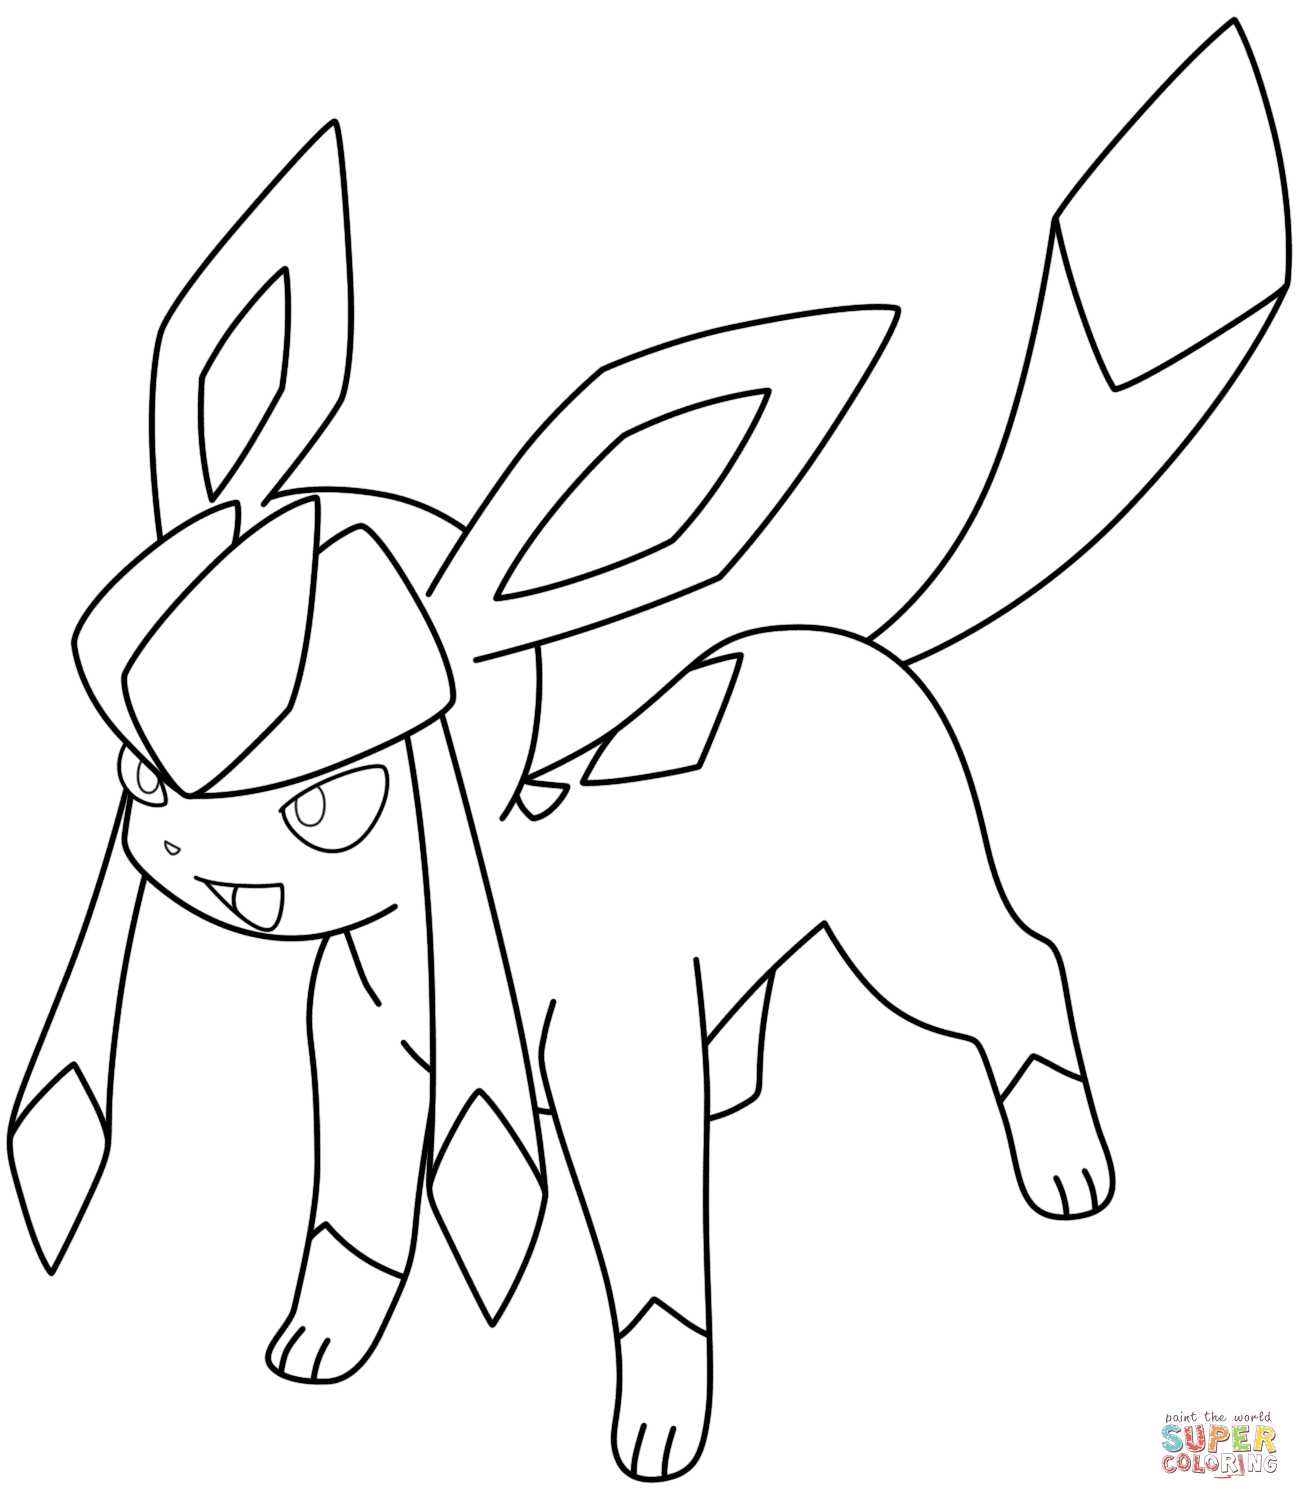 Glaceon Pokemon Coloring Page | Pokemon Coloring Pages avec Coloriage Pokemon Evoli